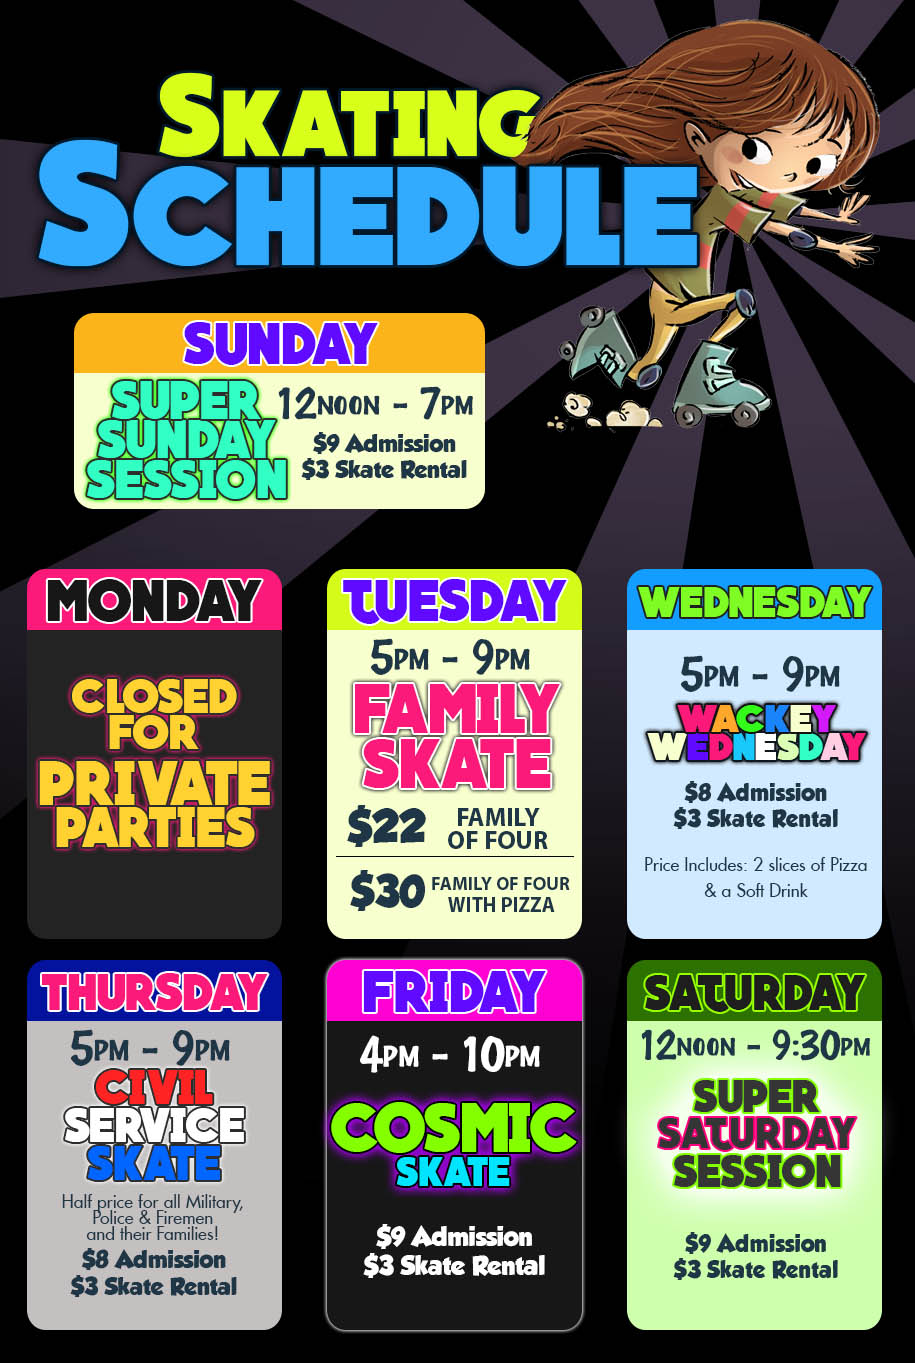 Crystal Palace Roller Skating Rink Winter Schedule